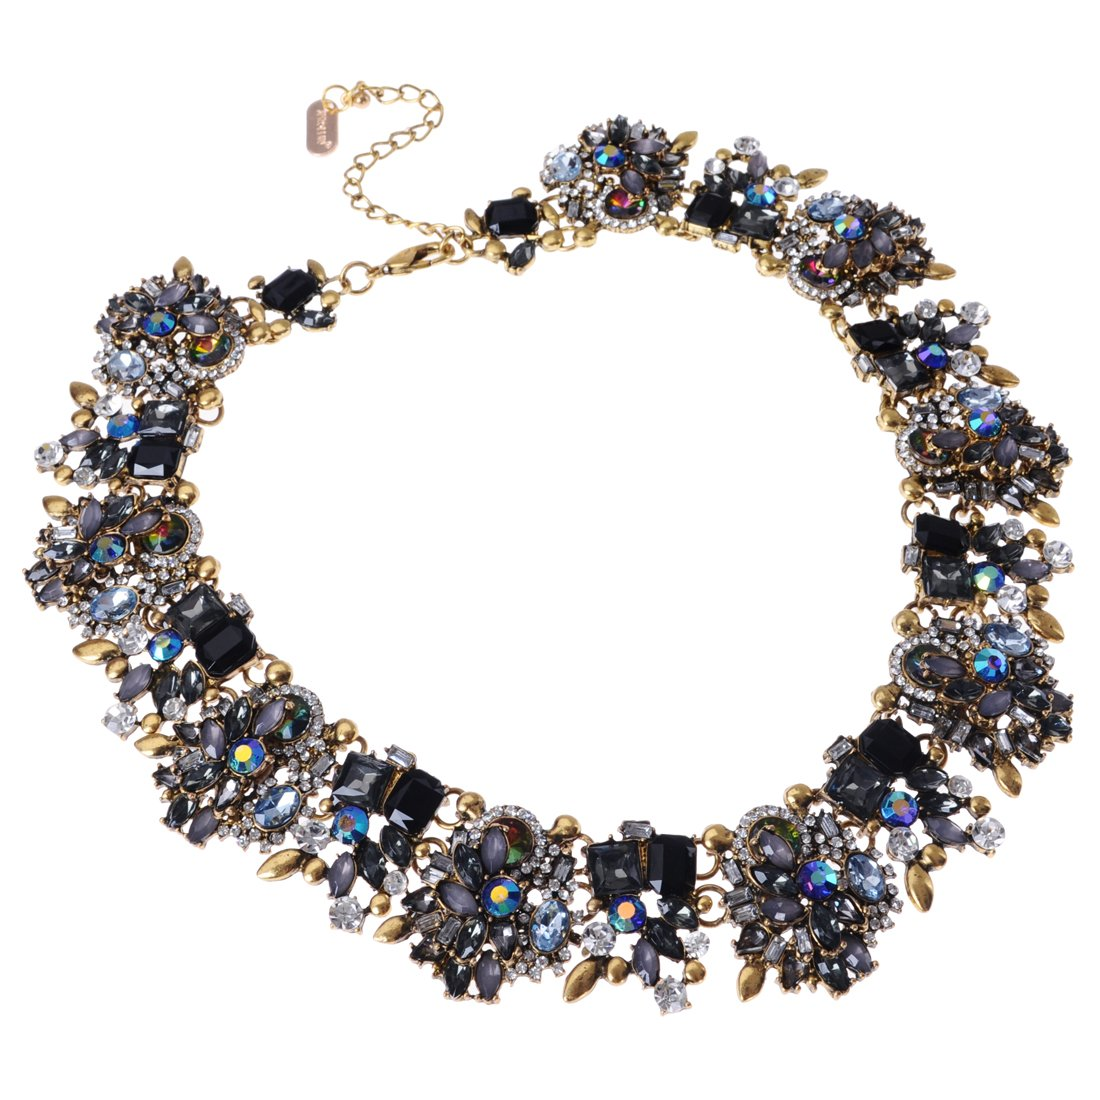 Jerollin Vintage Gold Tone Chain Multi-Color Glass Crystal Charm Choker Statement Collar Necklace